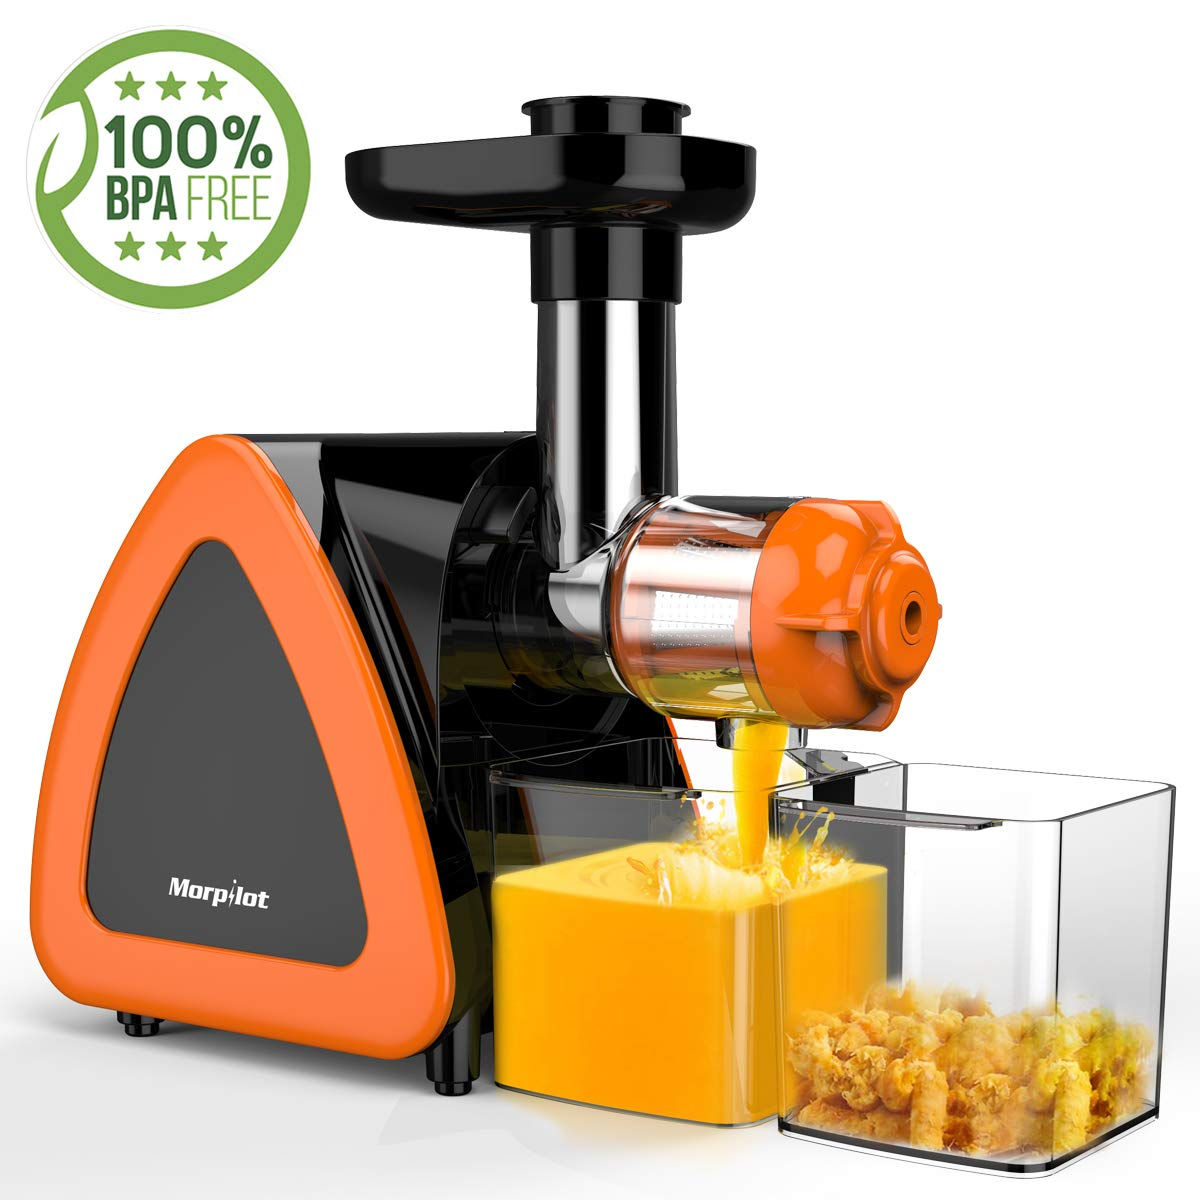 Morpilot juicer/cold press